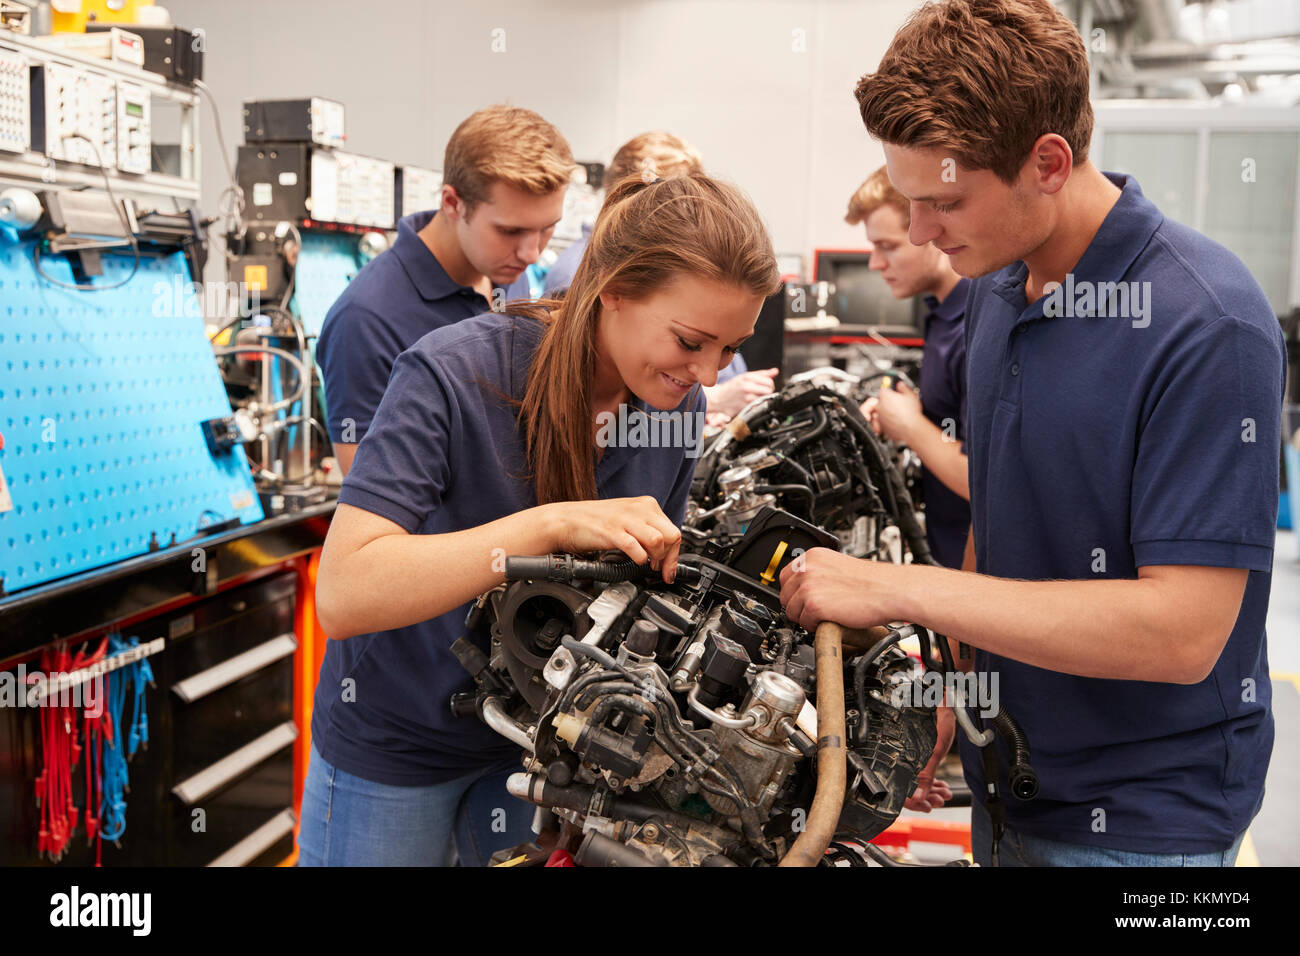 Apprentice car mechanics working on an engine - Stock Image